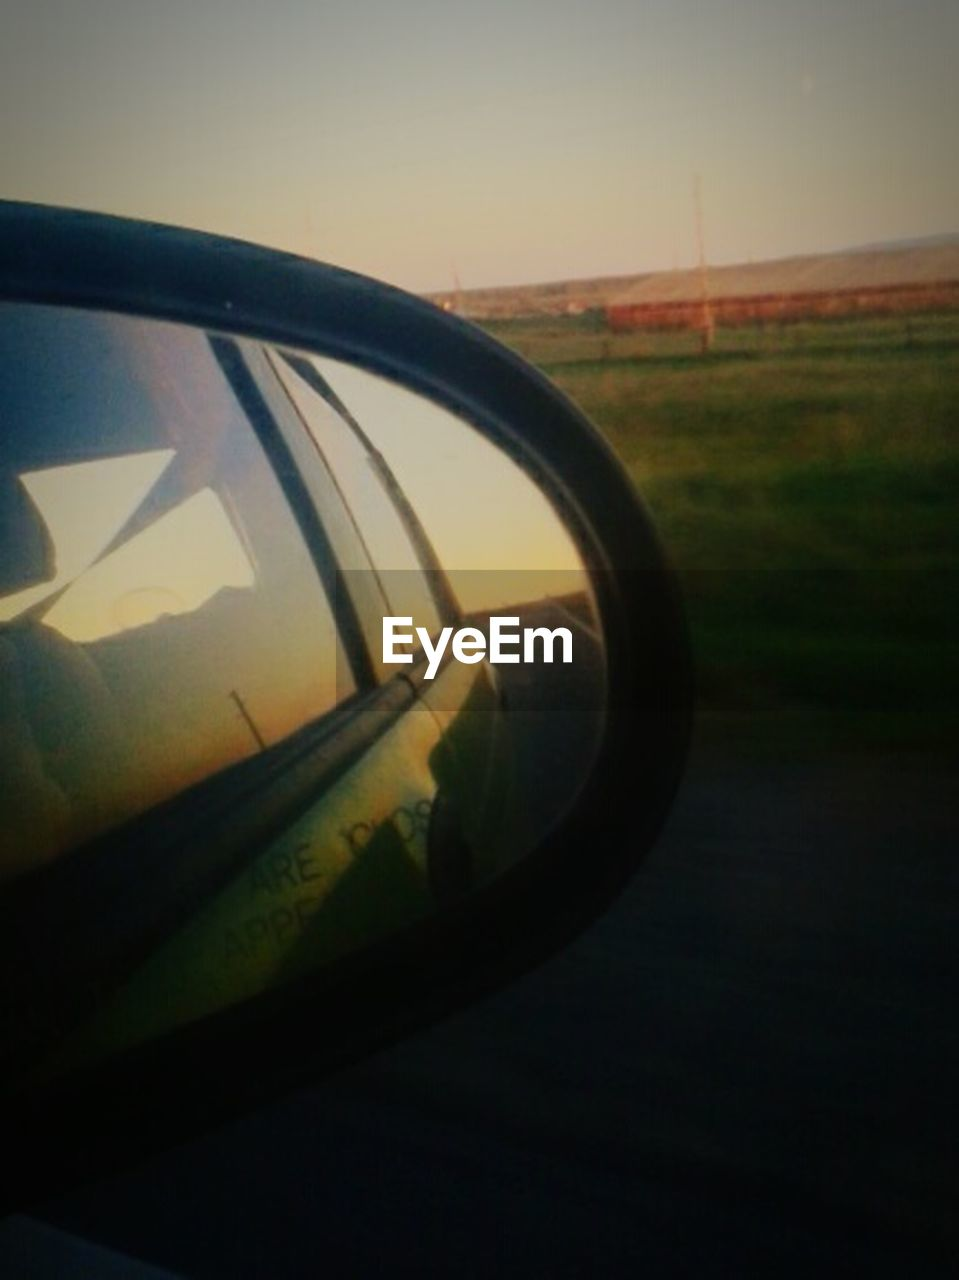 sky, transportation, mode of transportation, sunset, nature, no people, car, motor vehicle, reflection, land vehicle, glass - material, side-view mirror, grass, outdoors, close-up, travel, road, day, field, landscape, road trip, vehicle mirror